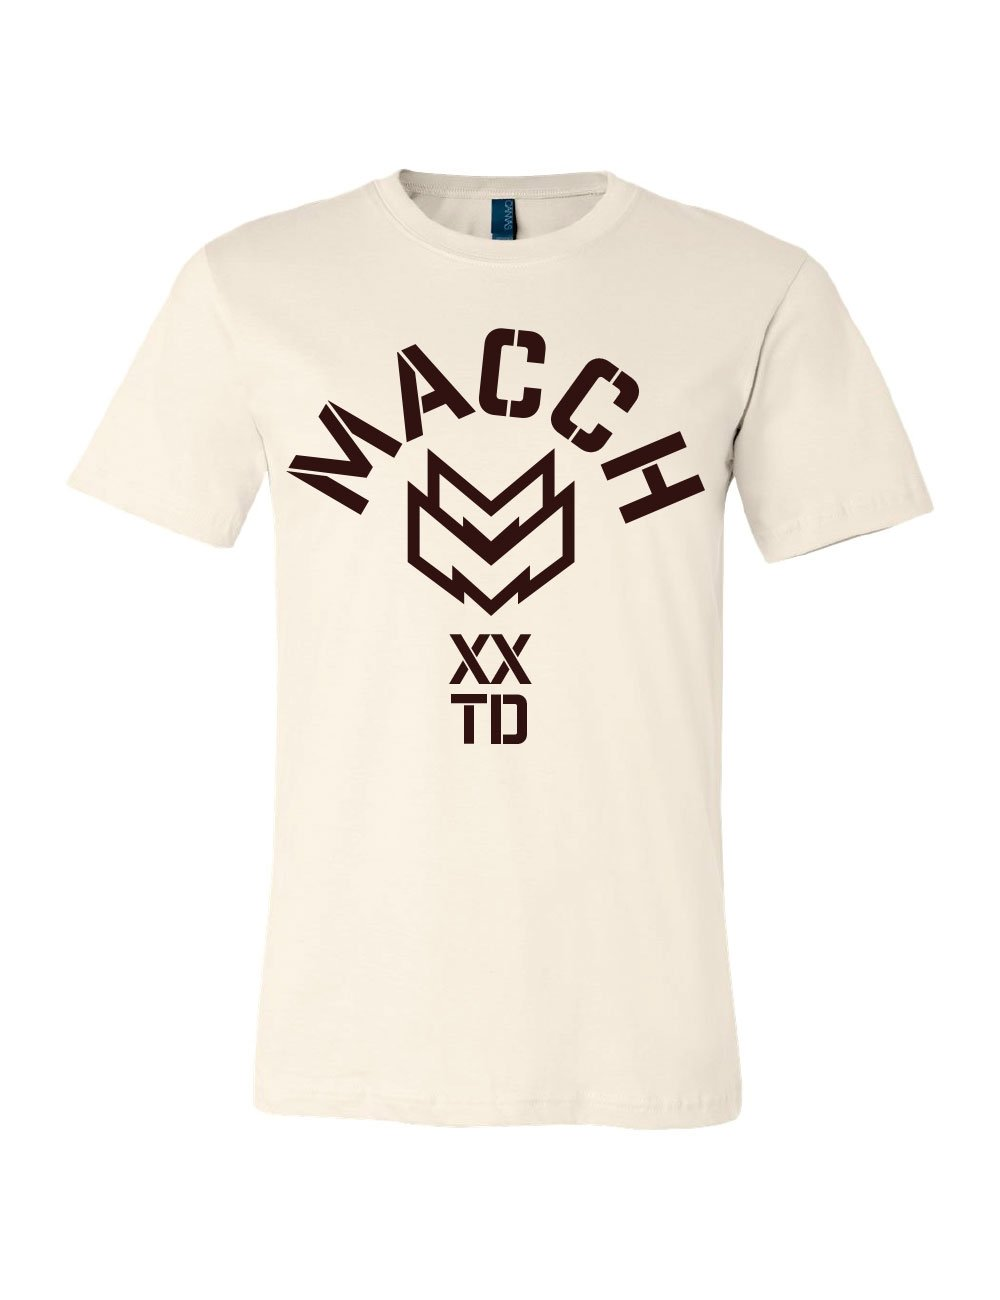 Macch Training Day Tee - Cream